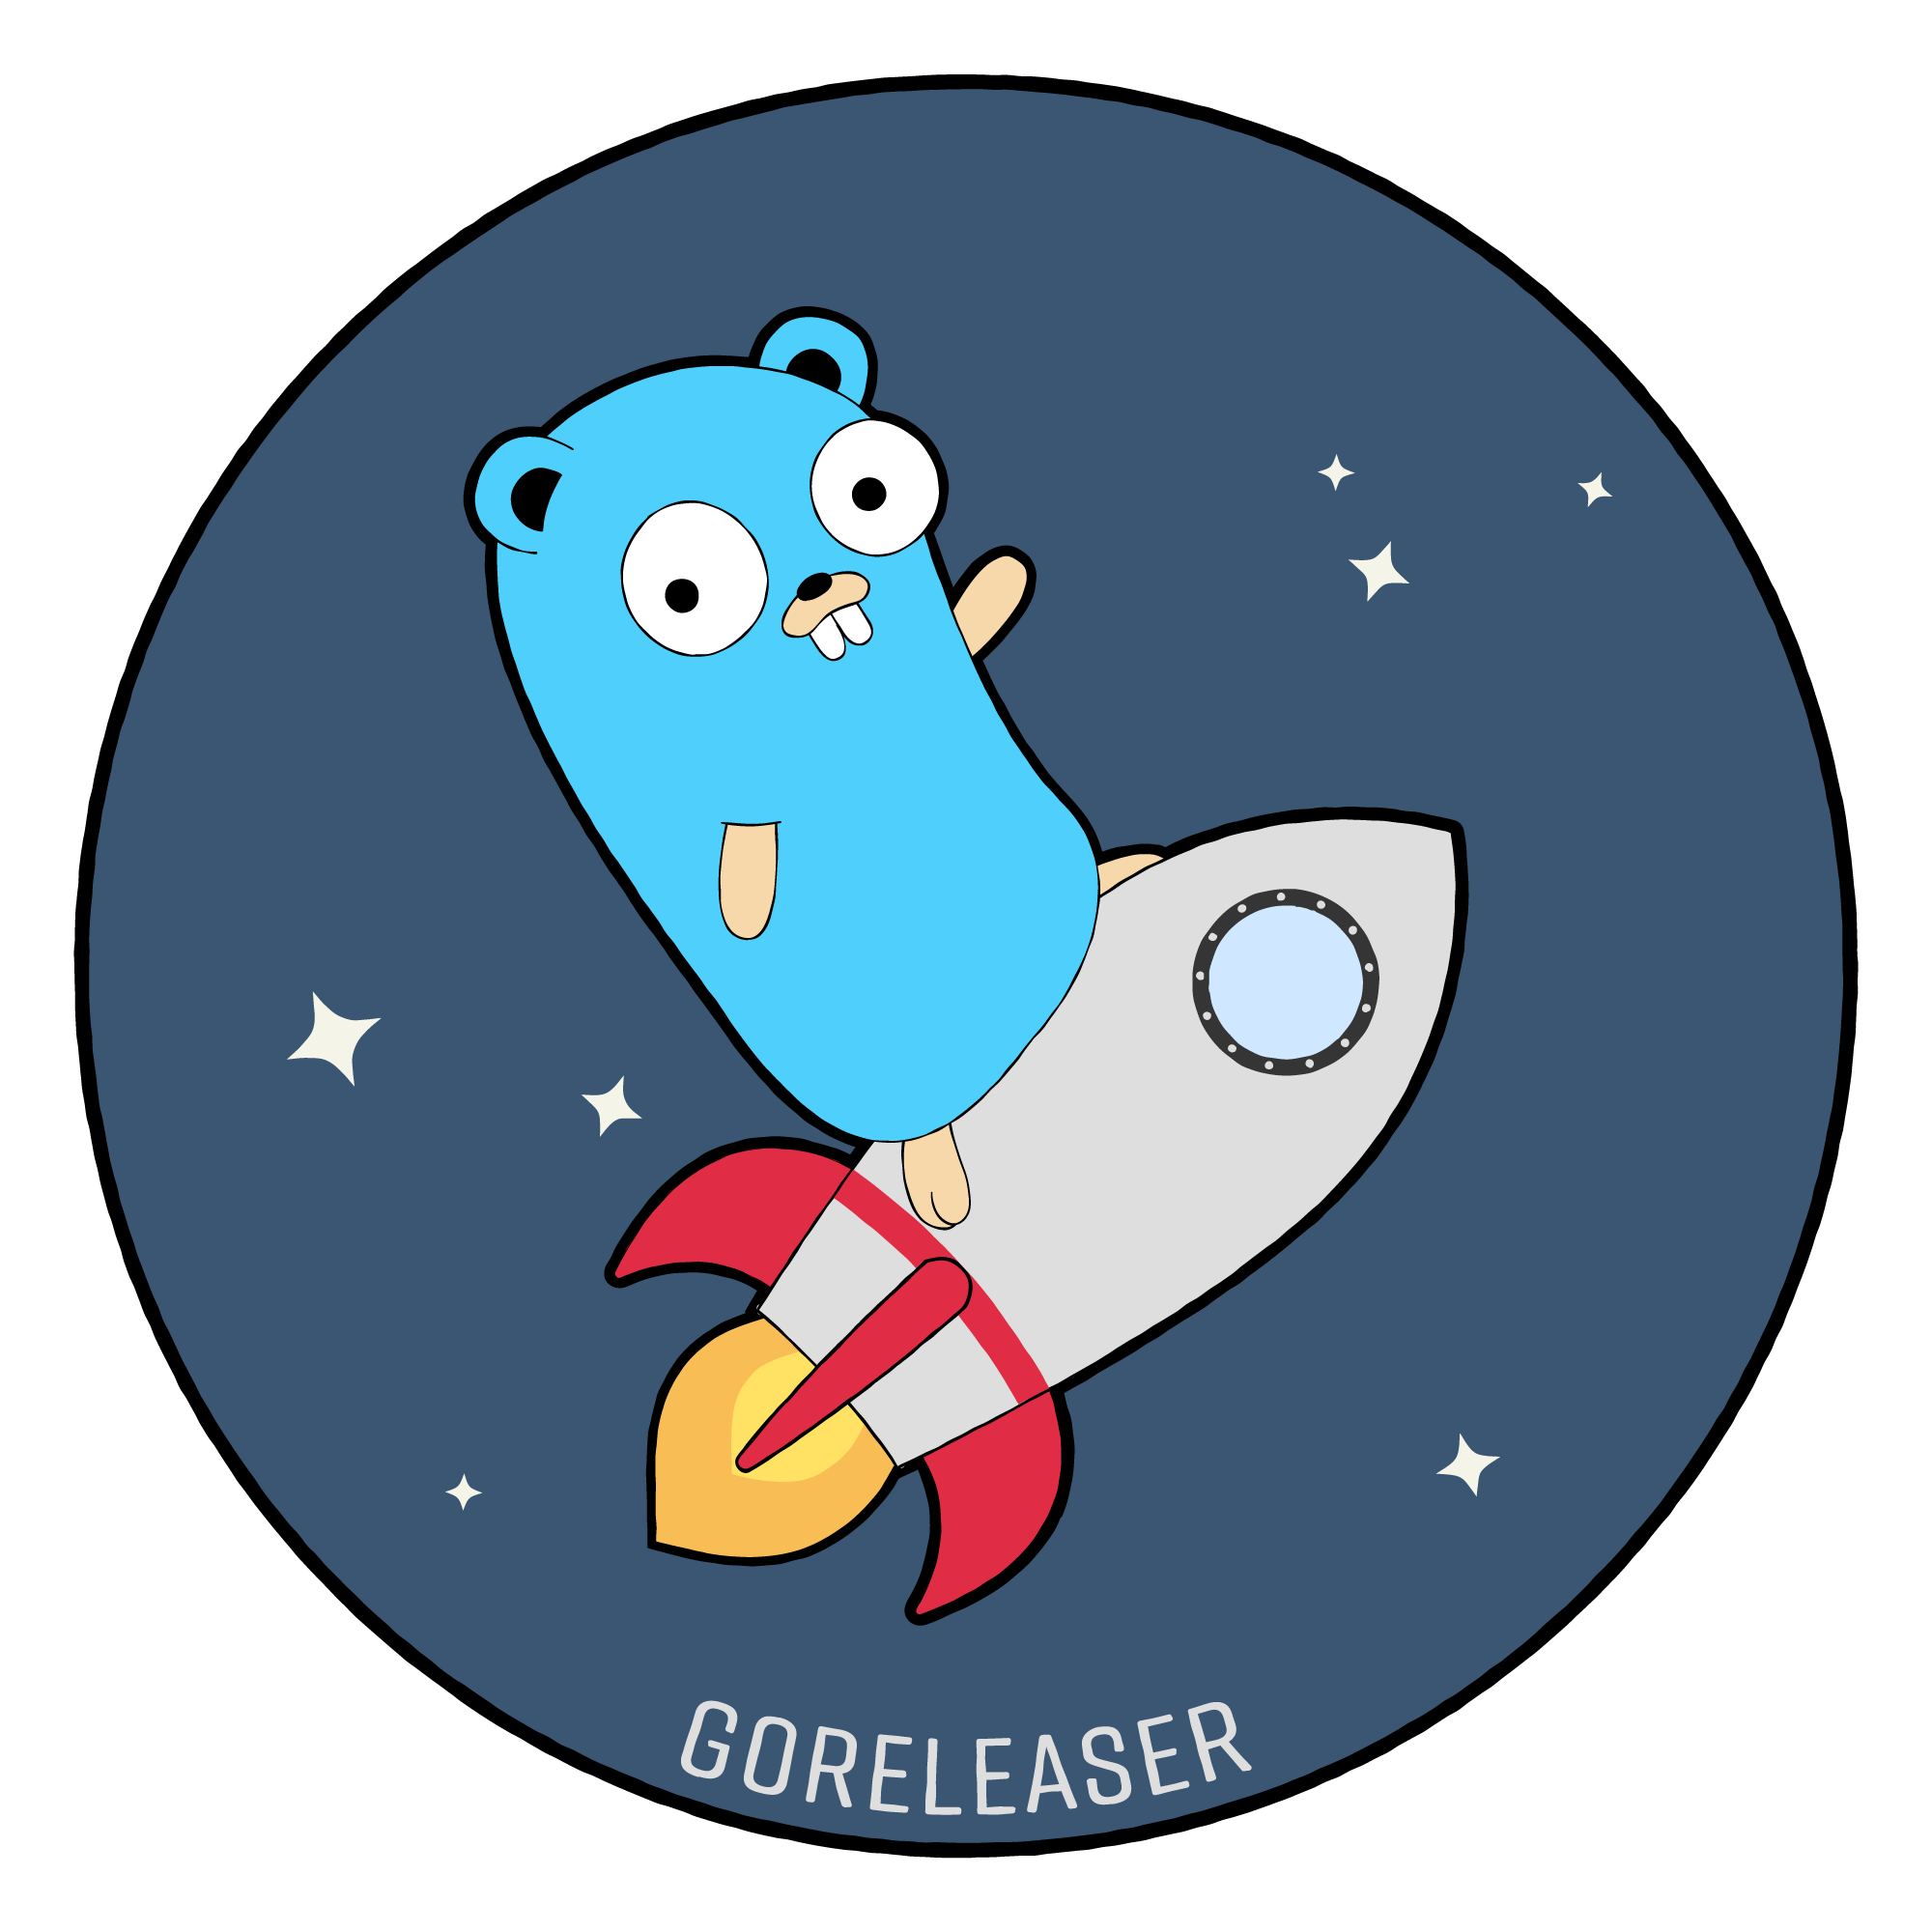 goreleaser new logo